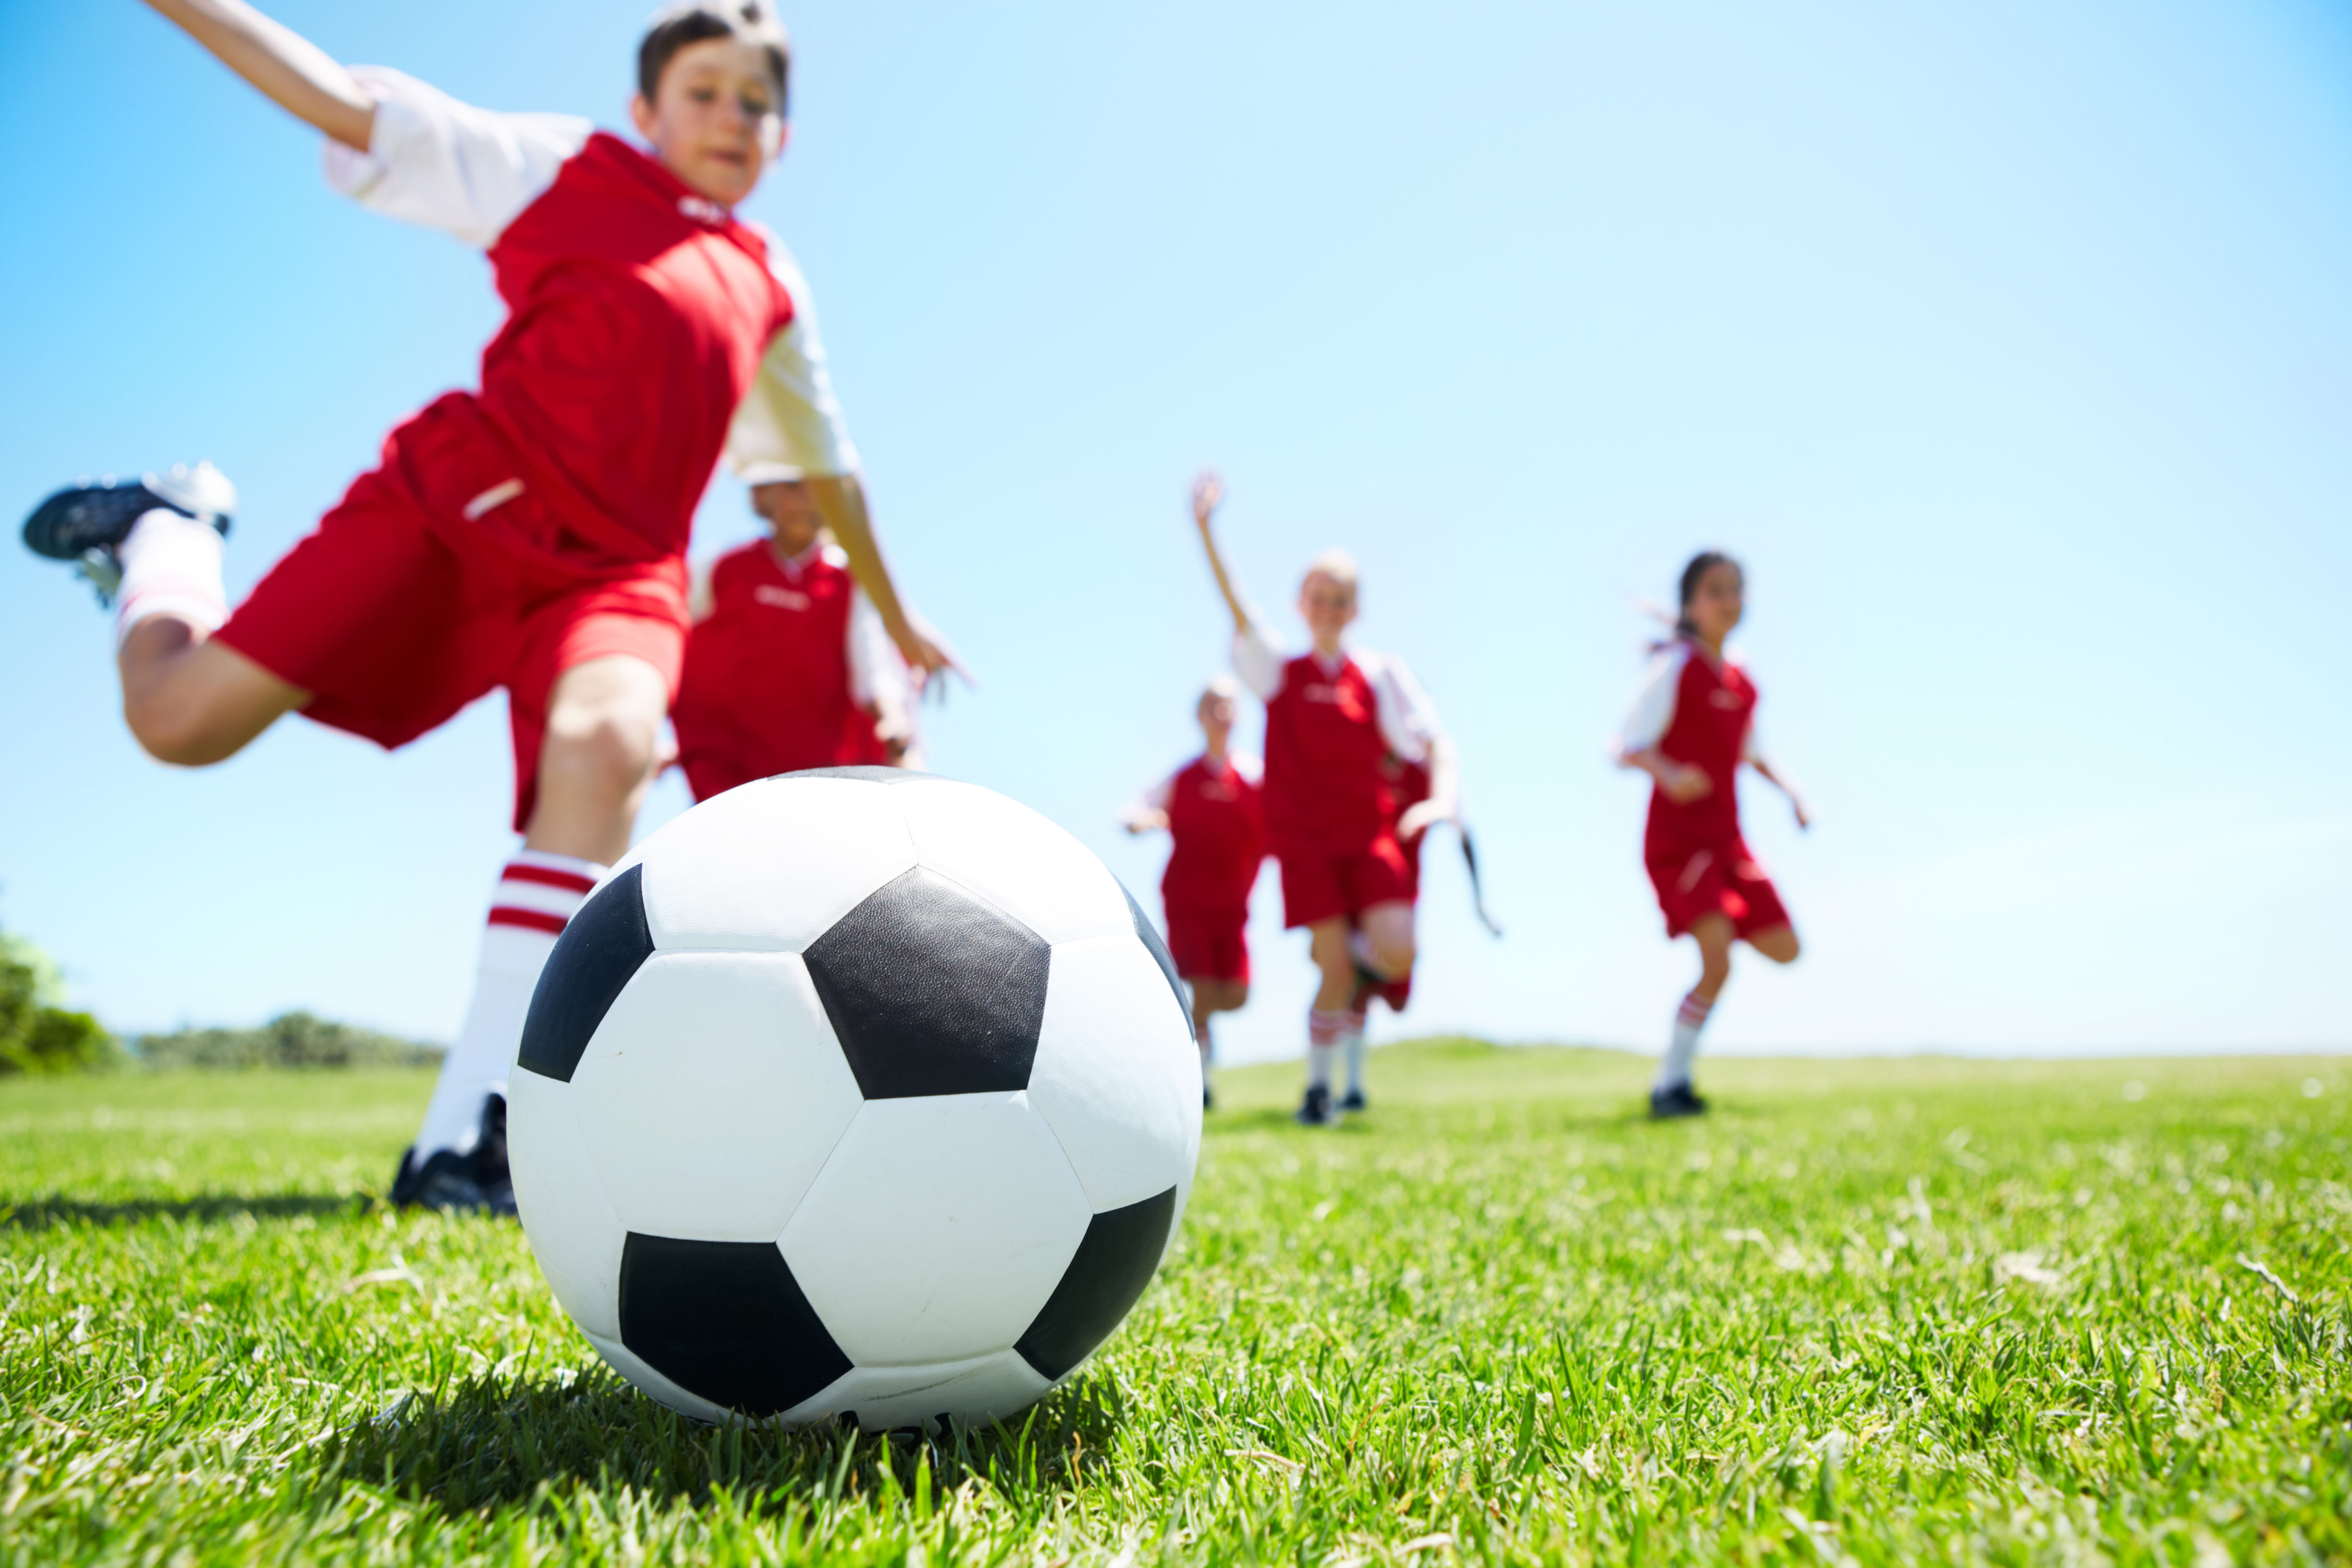 Hush Y'all! South Carolina Youth Soccer League Requests Silence From Parents